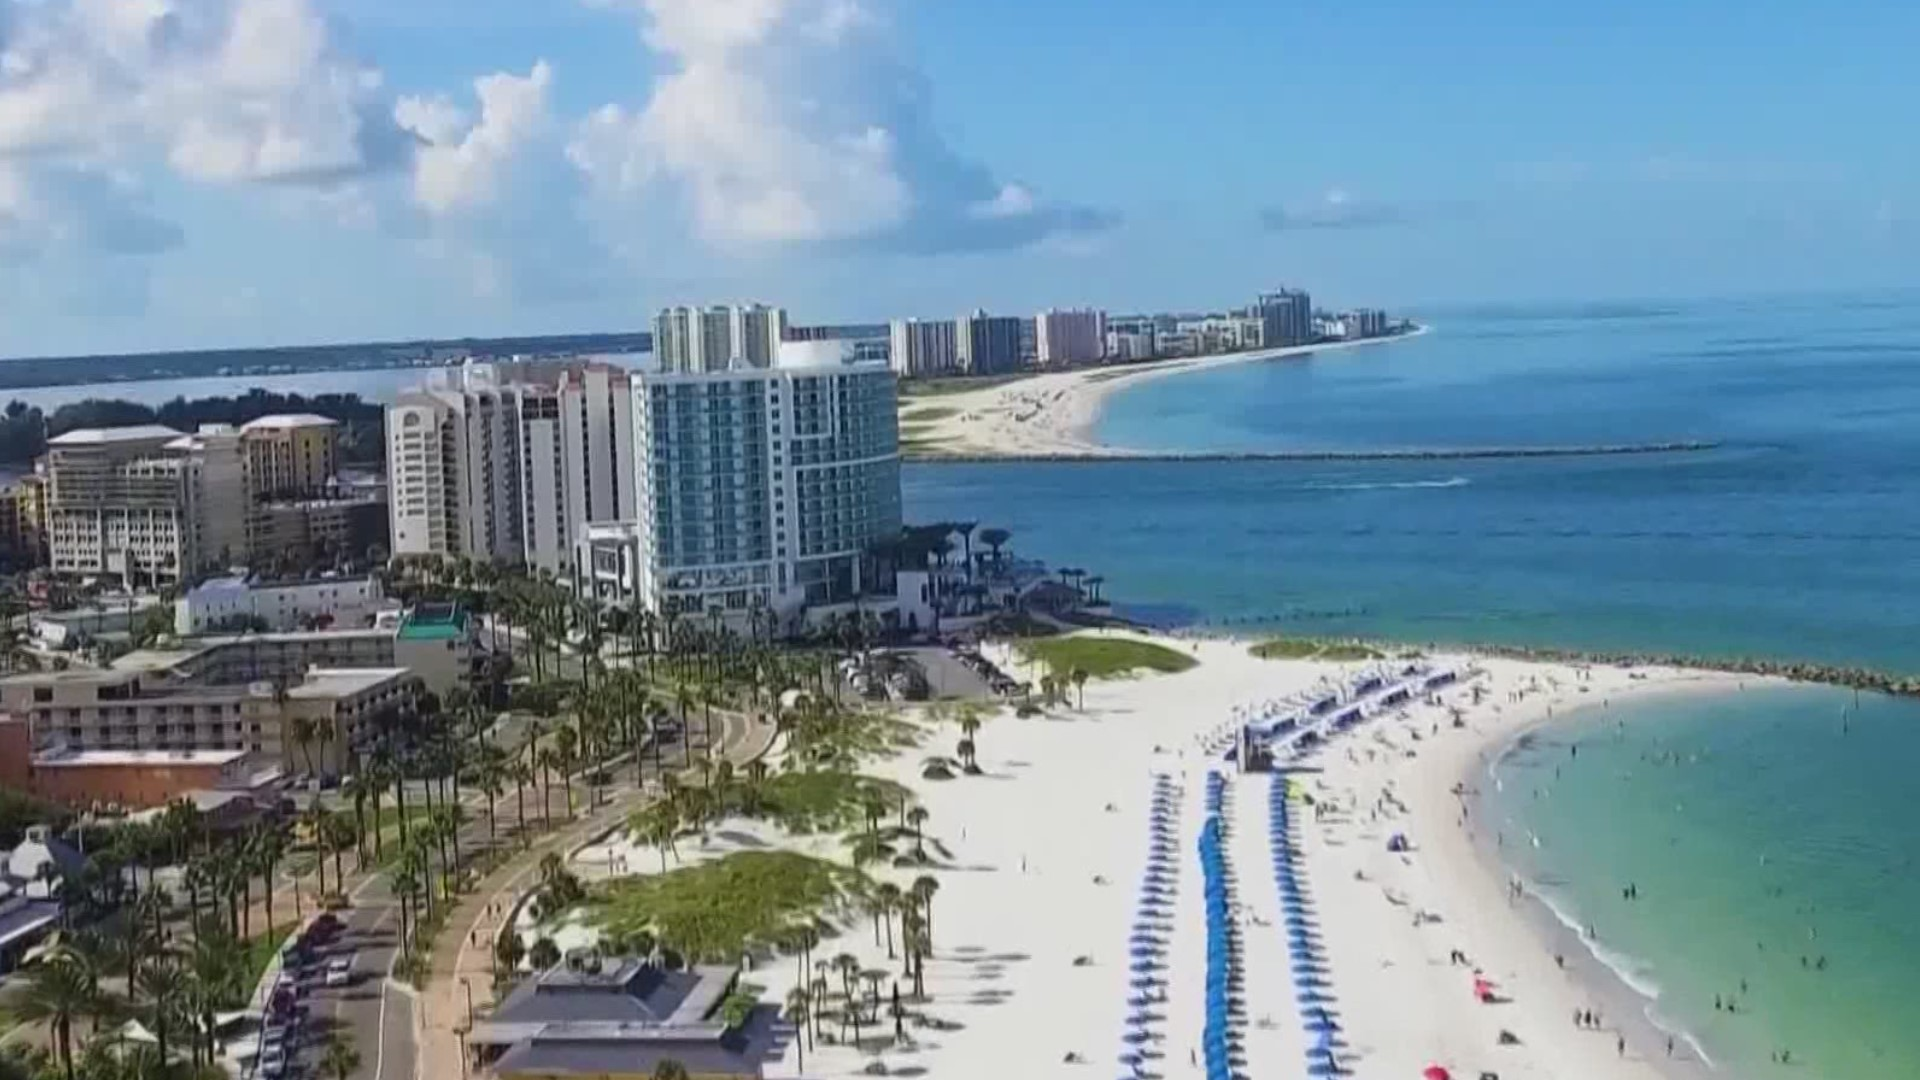 Covid 19 Concerns Rise As Tampa Bay Is Top U S Destination For Labor Day Visitors Cbs19 Tv